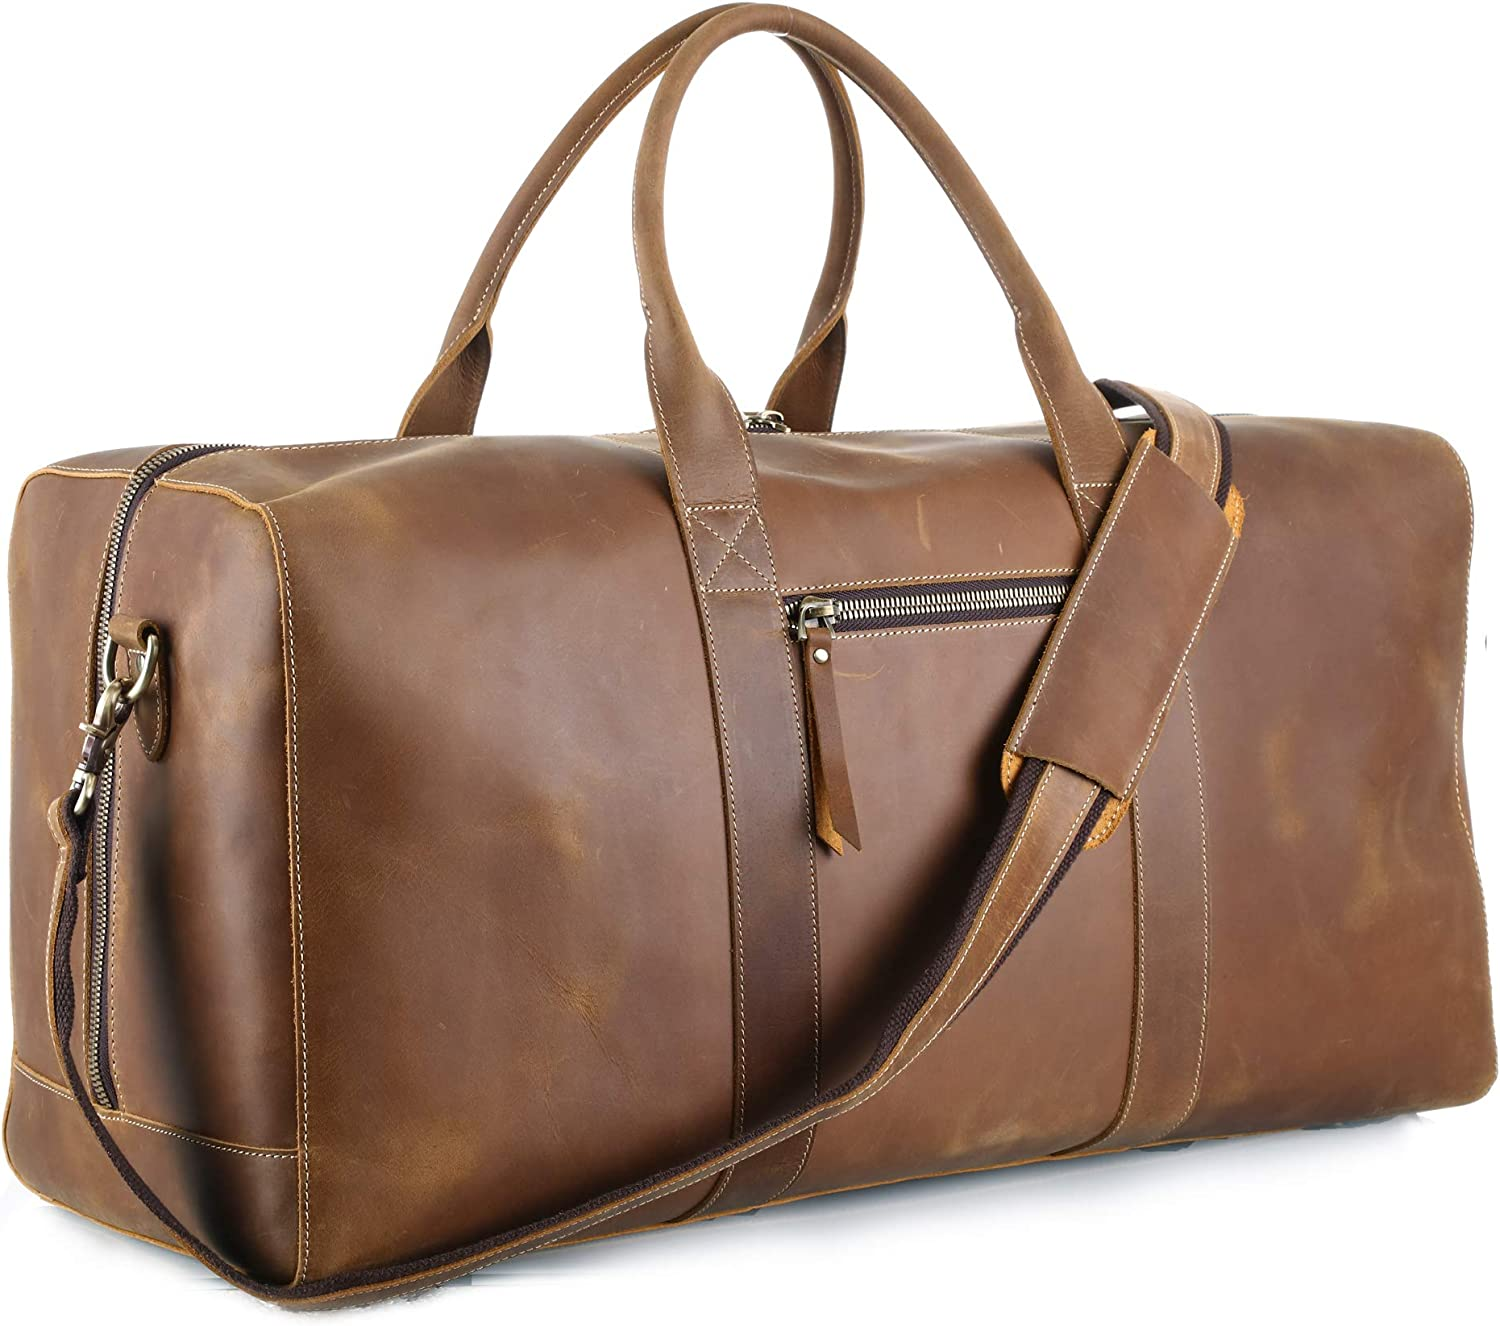 MERKIT 23 Cowhide Leather Travel Sports Overnight Duffle holdall Bag